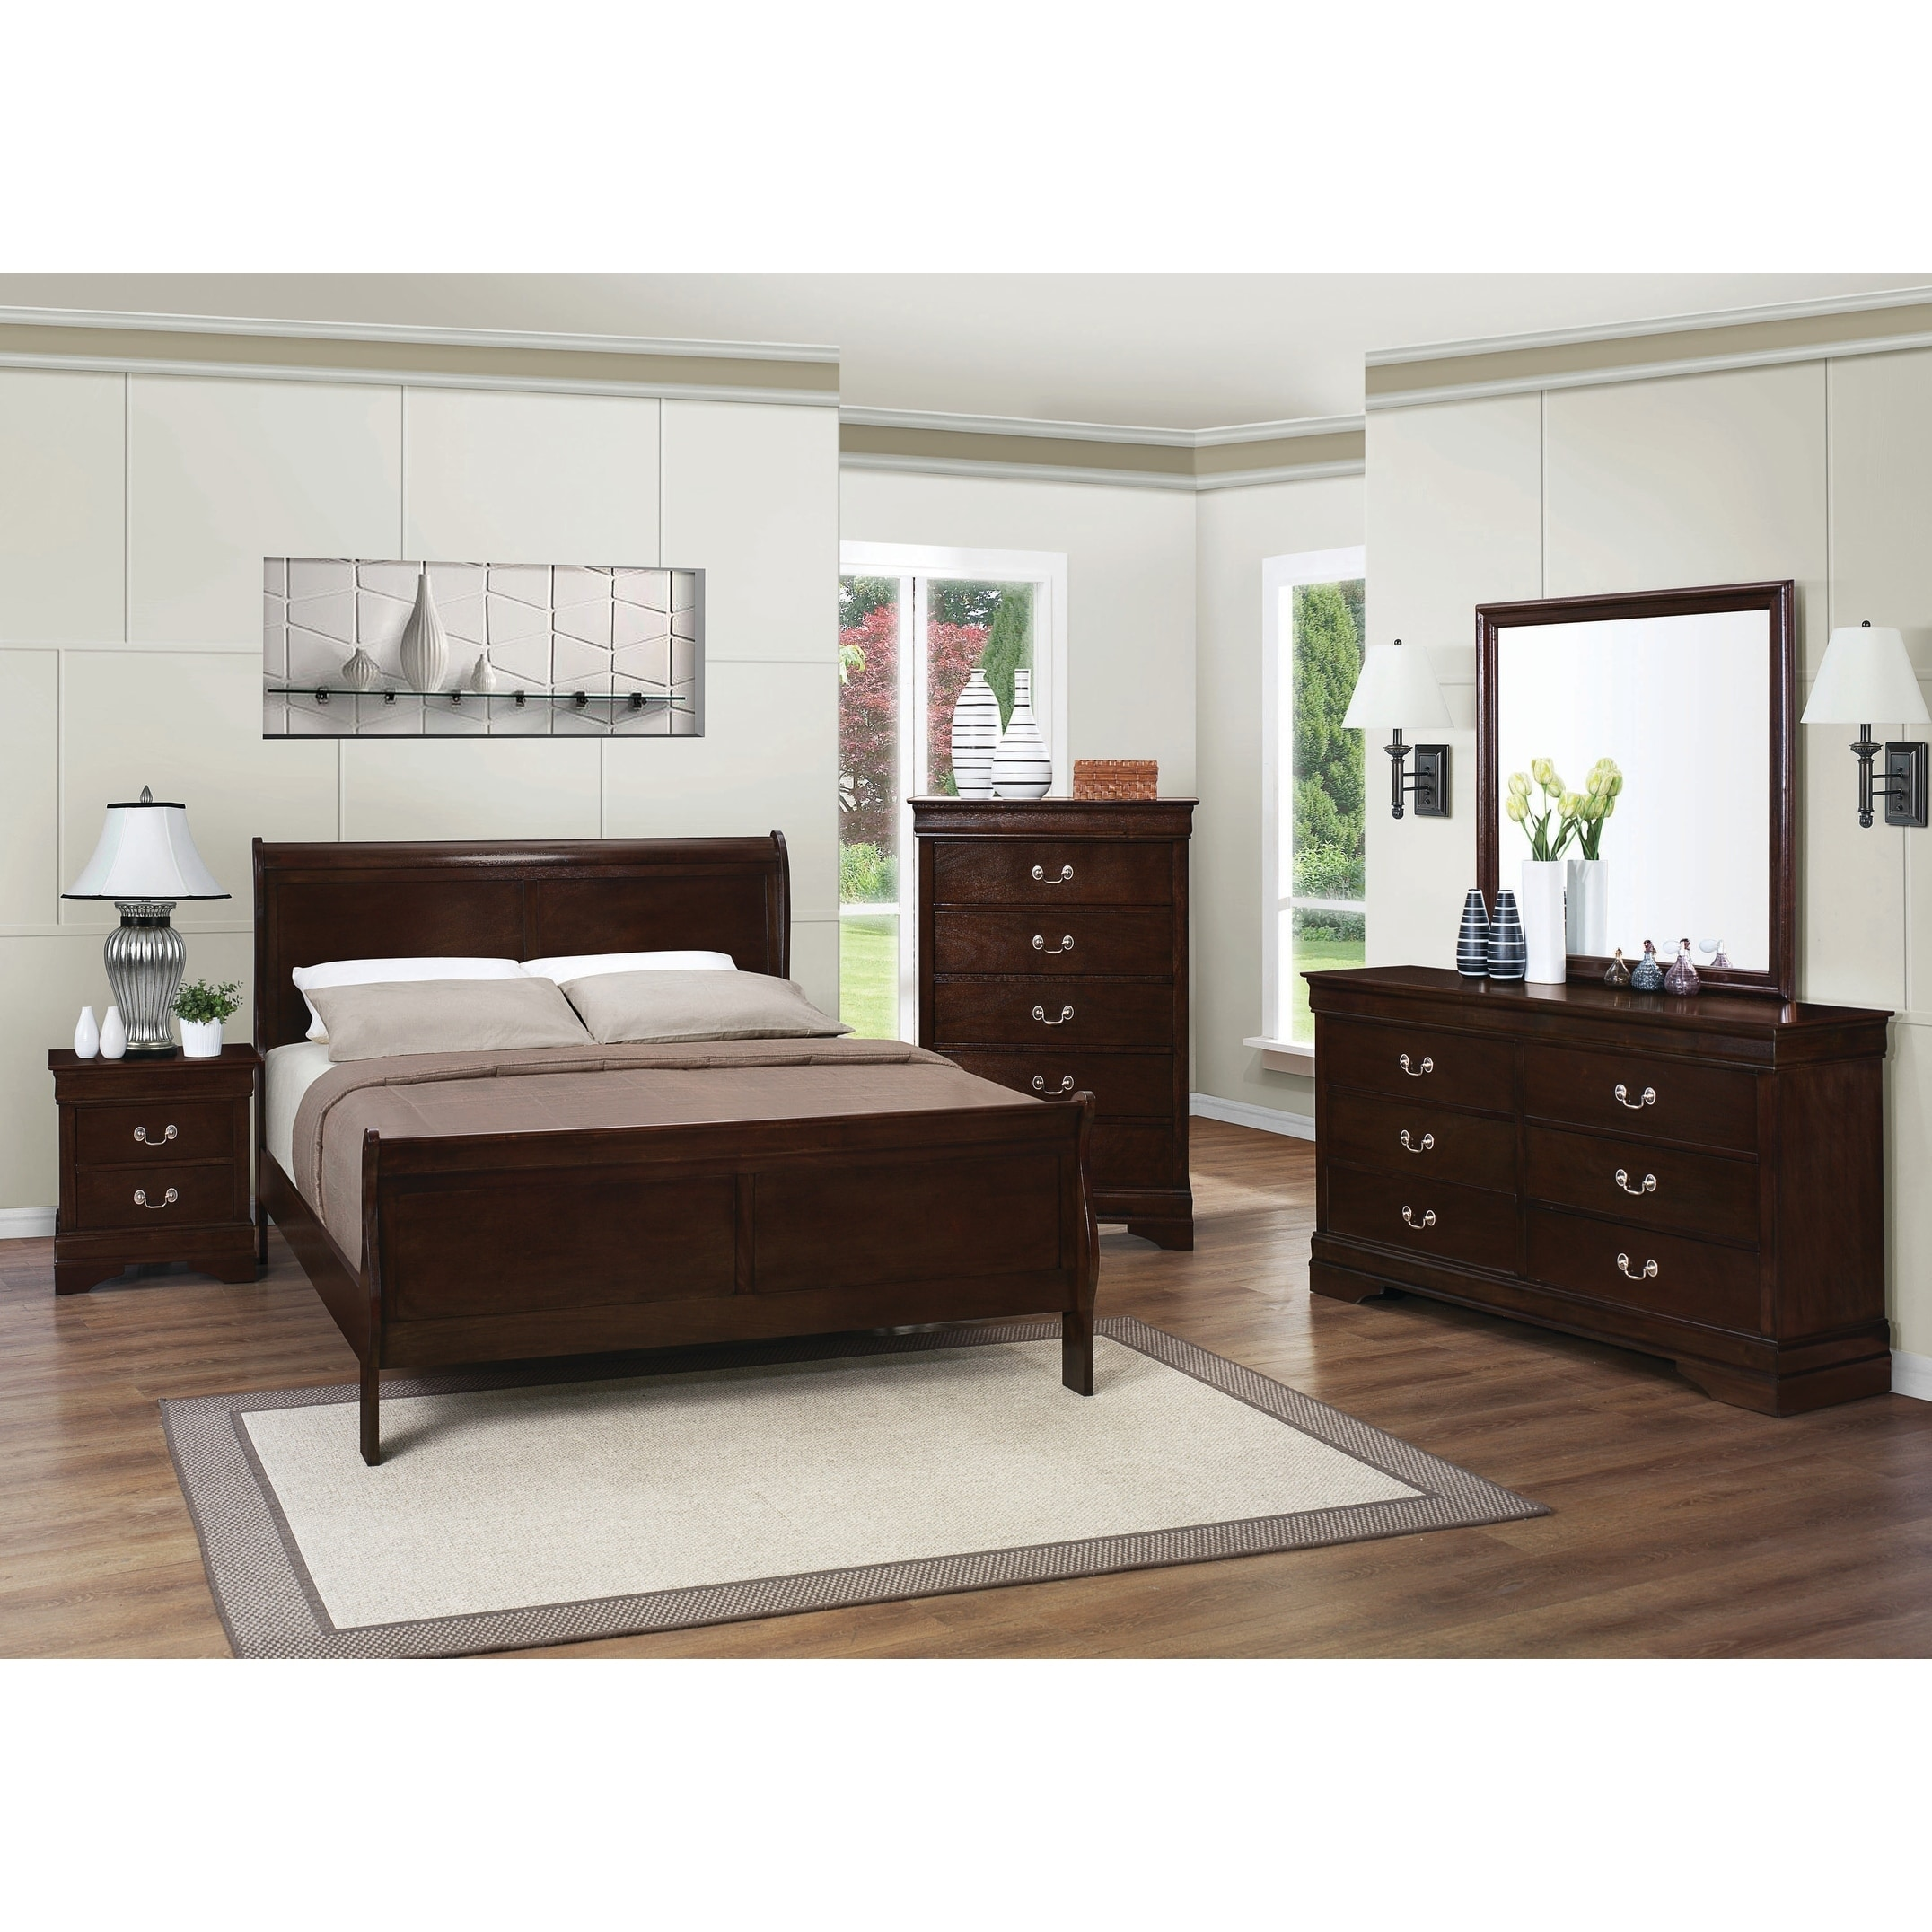 Innovative Twin Bedroom Set Creative